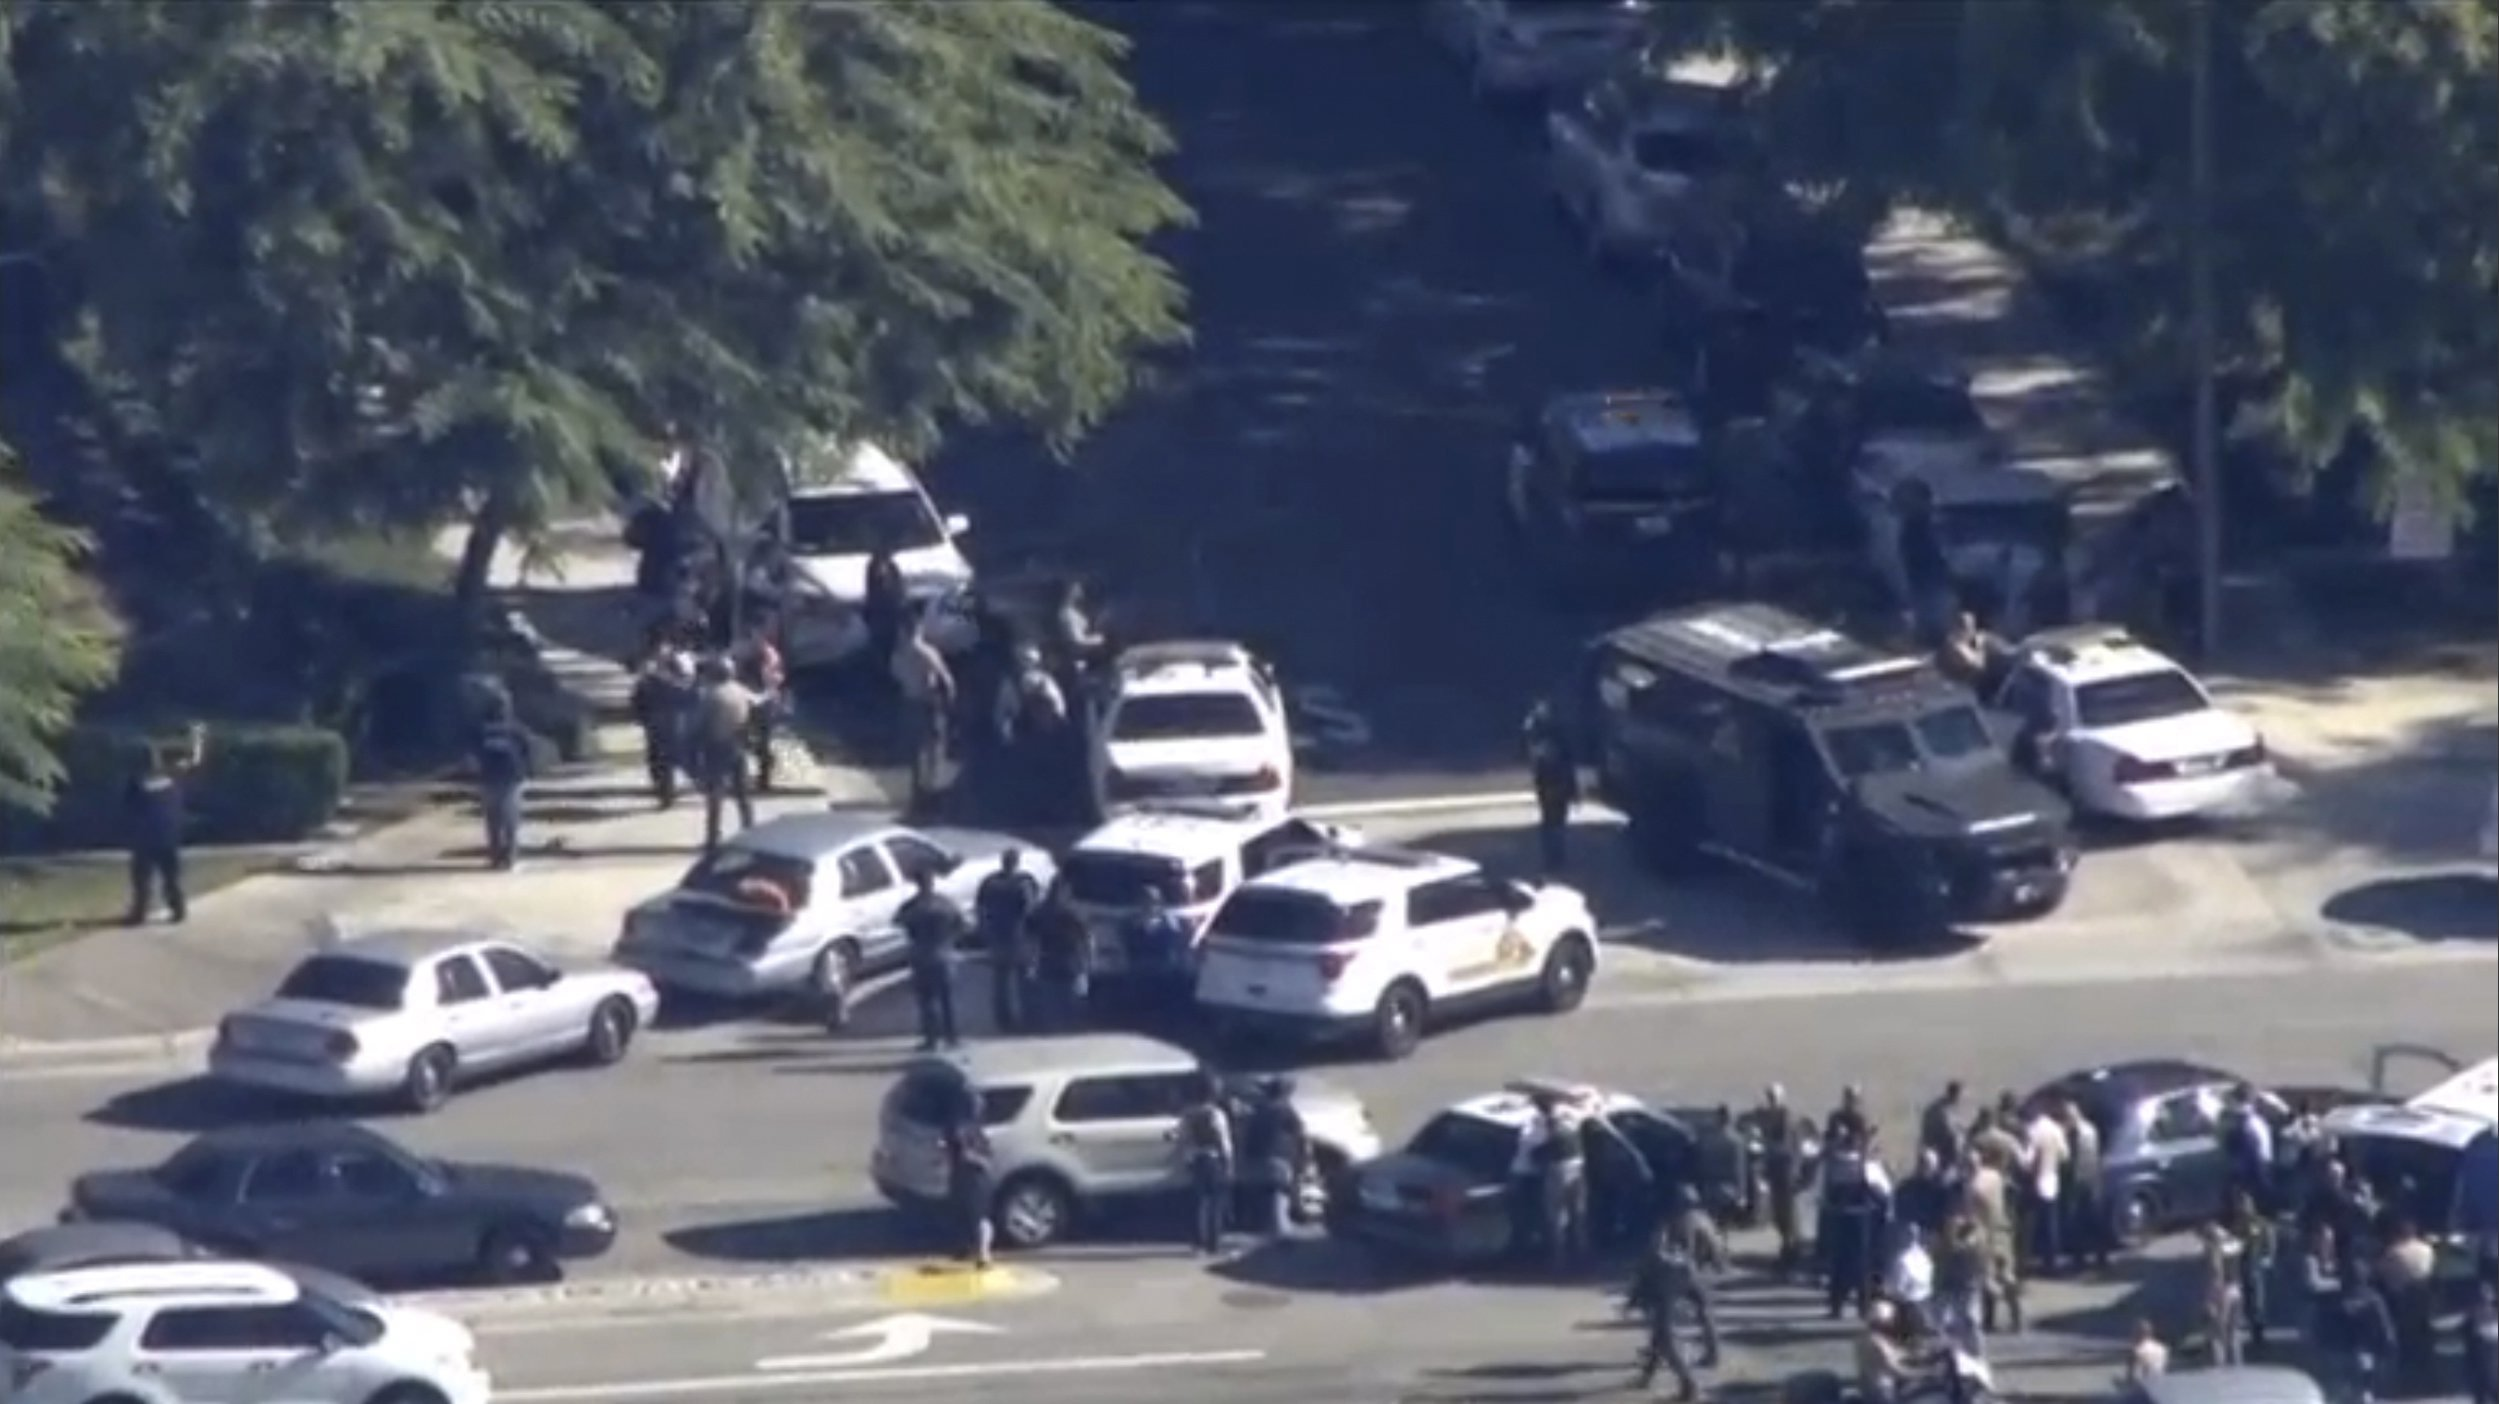 First responders responding to a shooting at the California Department of Developmental Services Inland Regional Center in San Bernardino, CA on Dec. 2, 2015.